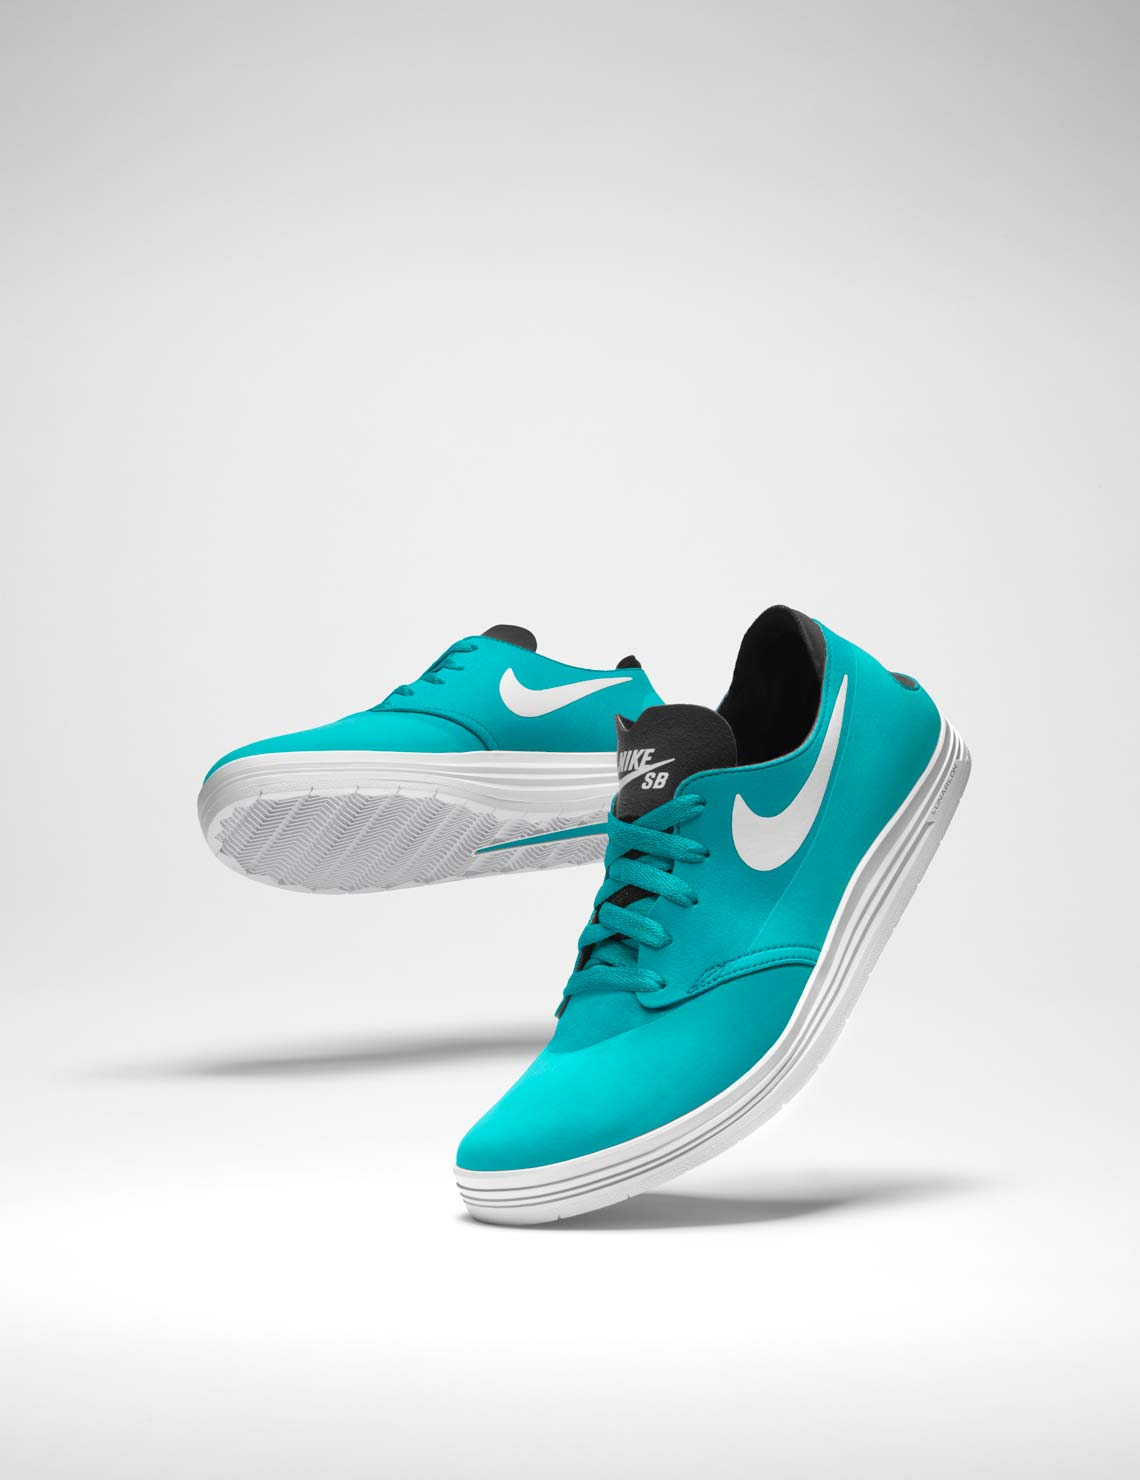 turquoise nikeSB one shot shoes skateboarding